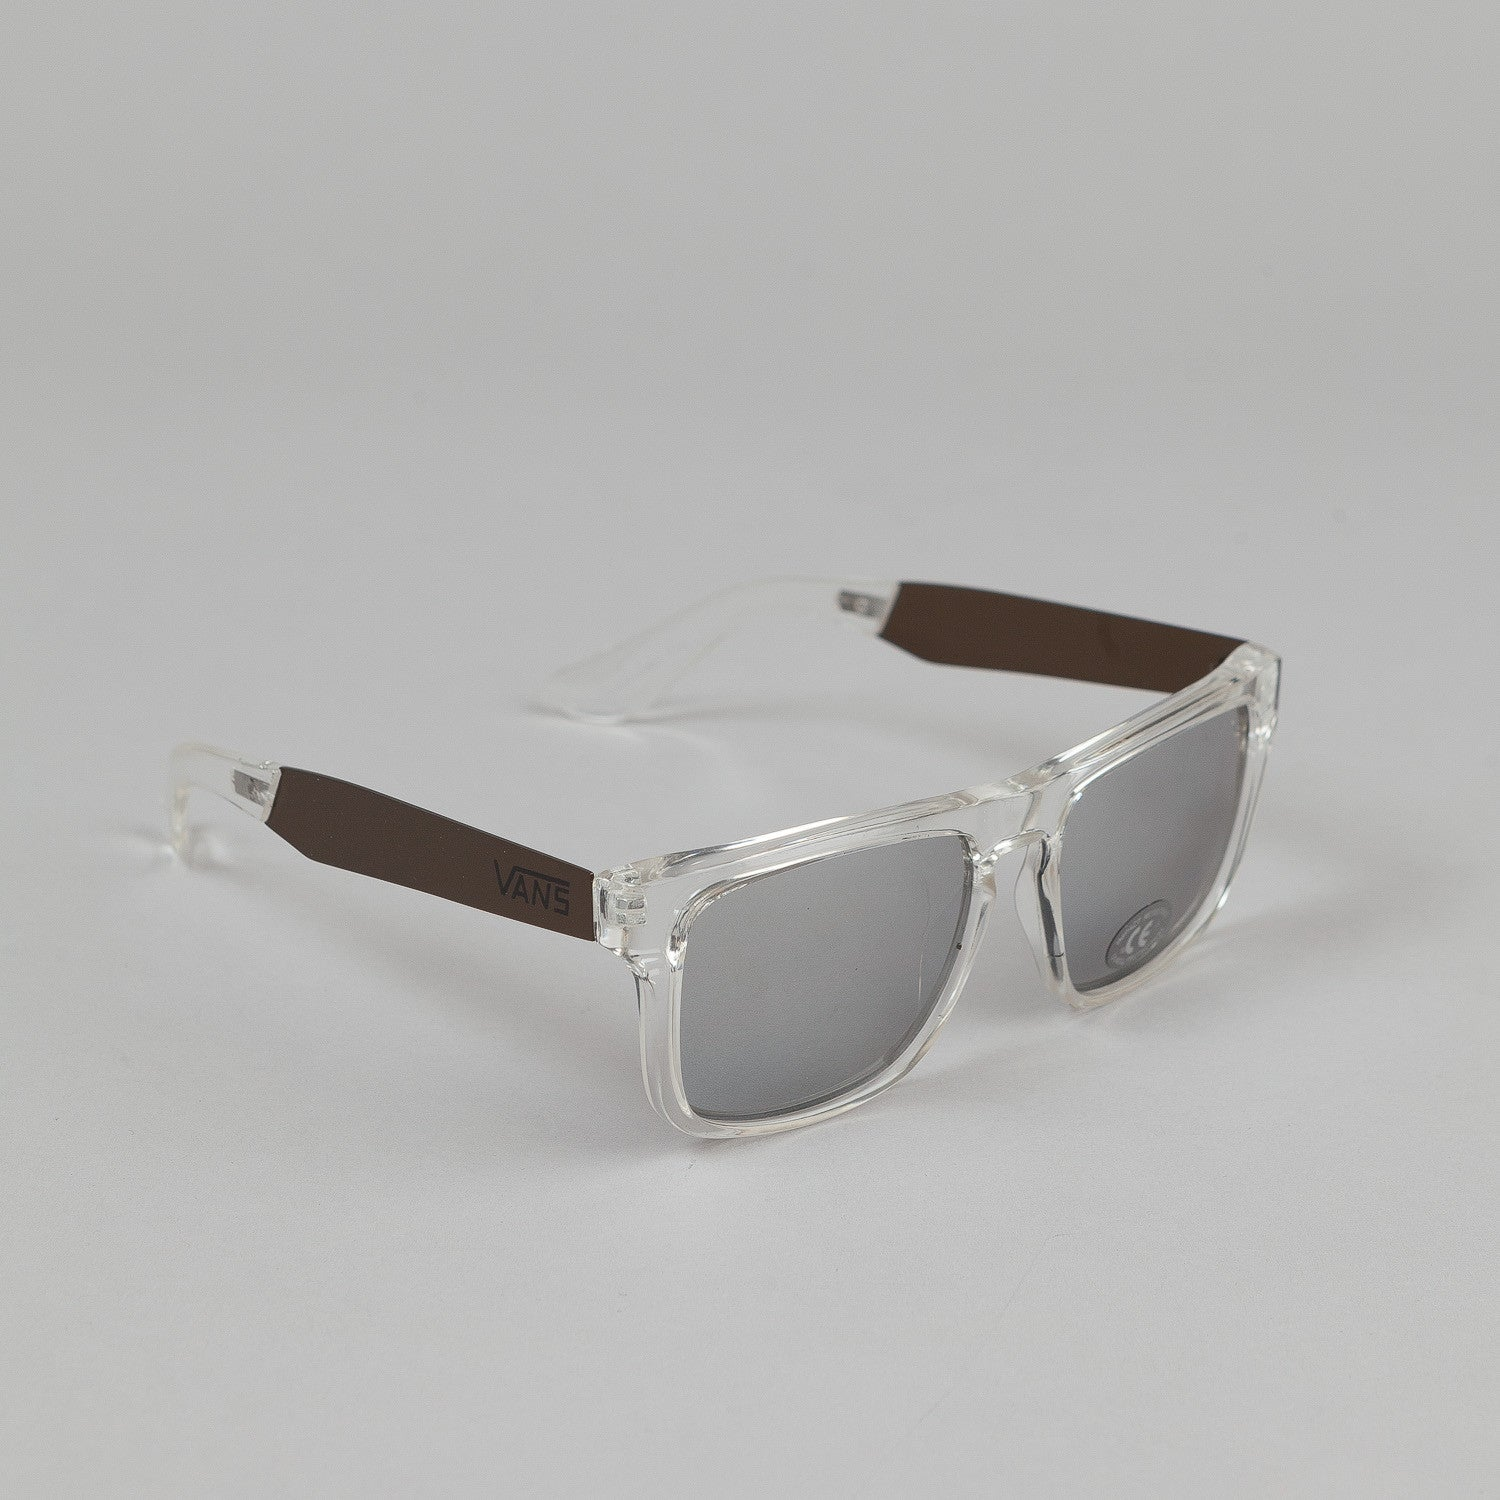 Vans Squared Off Sunglasses - Clear / Gold